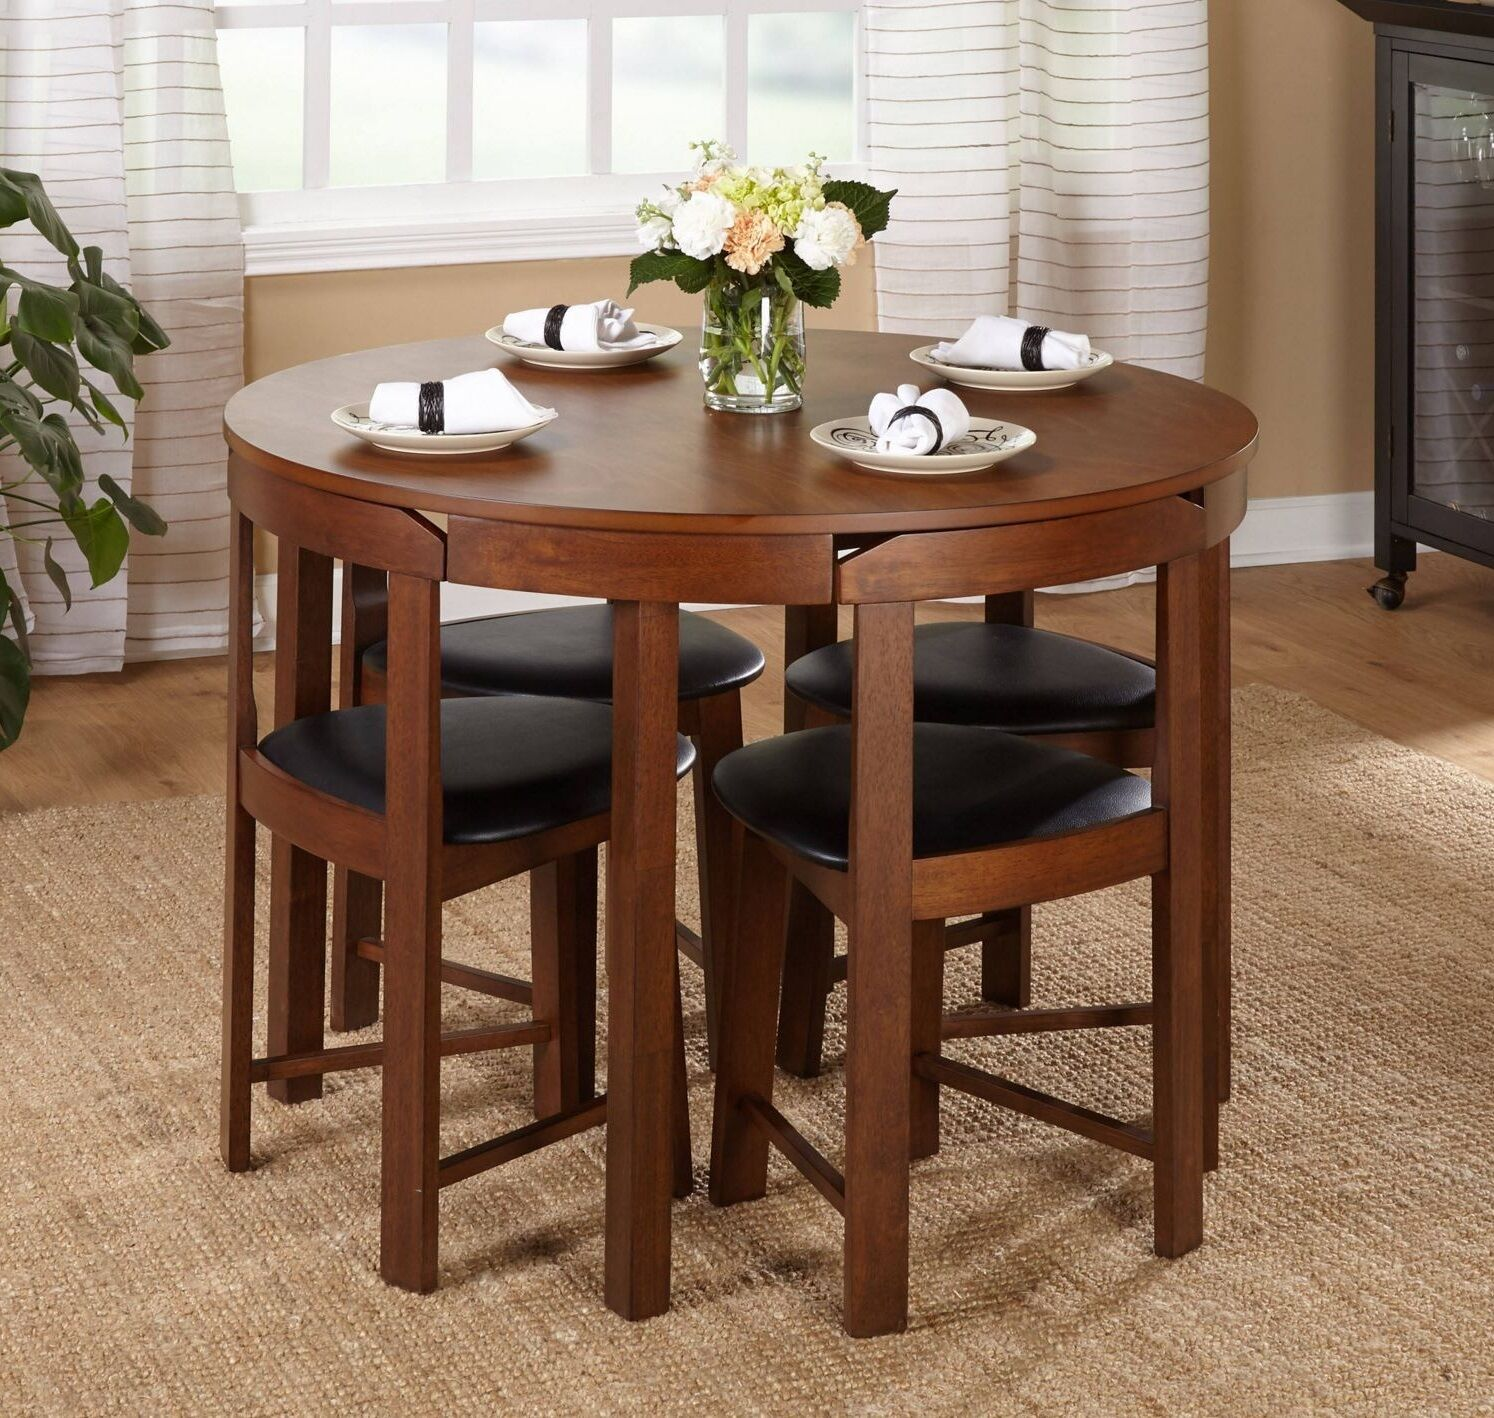 small kitchen dining sets island cart target 5 pc oval dinette set table w 4 wood seat